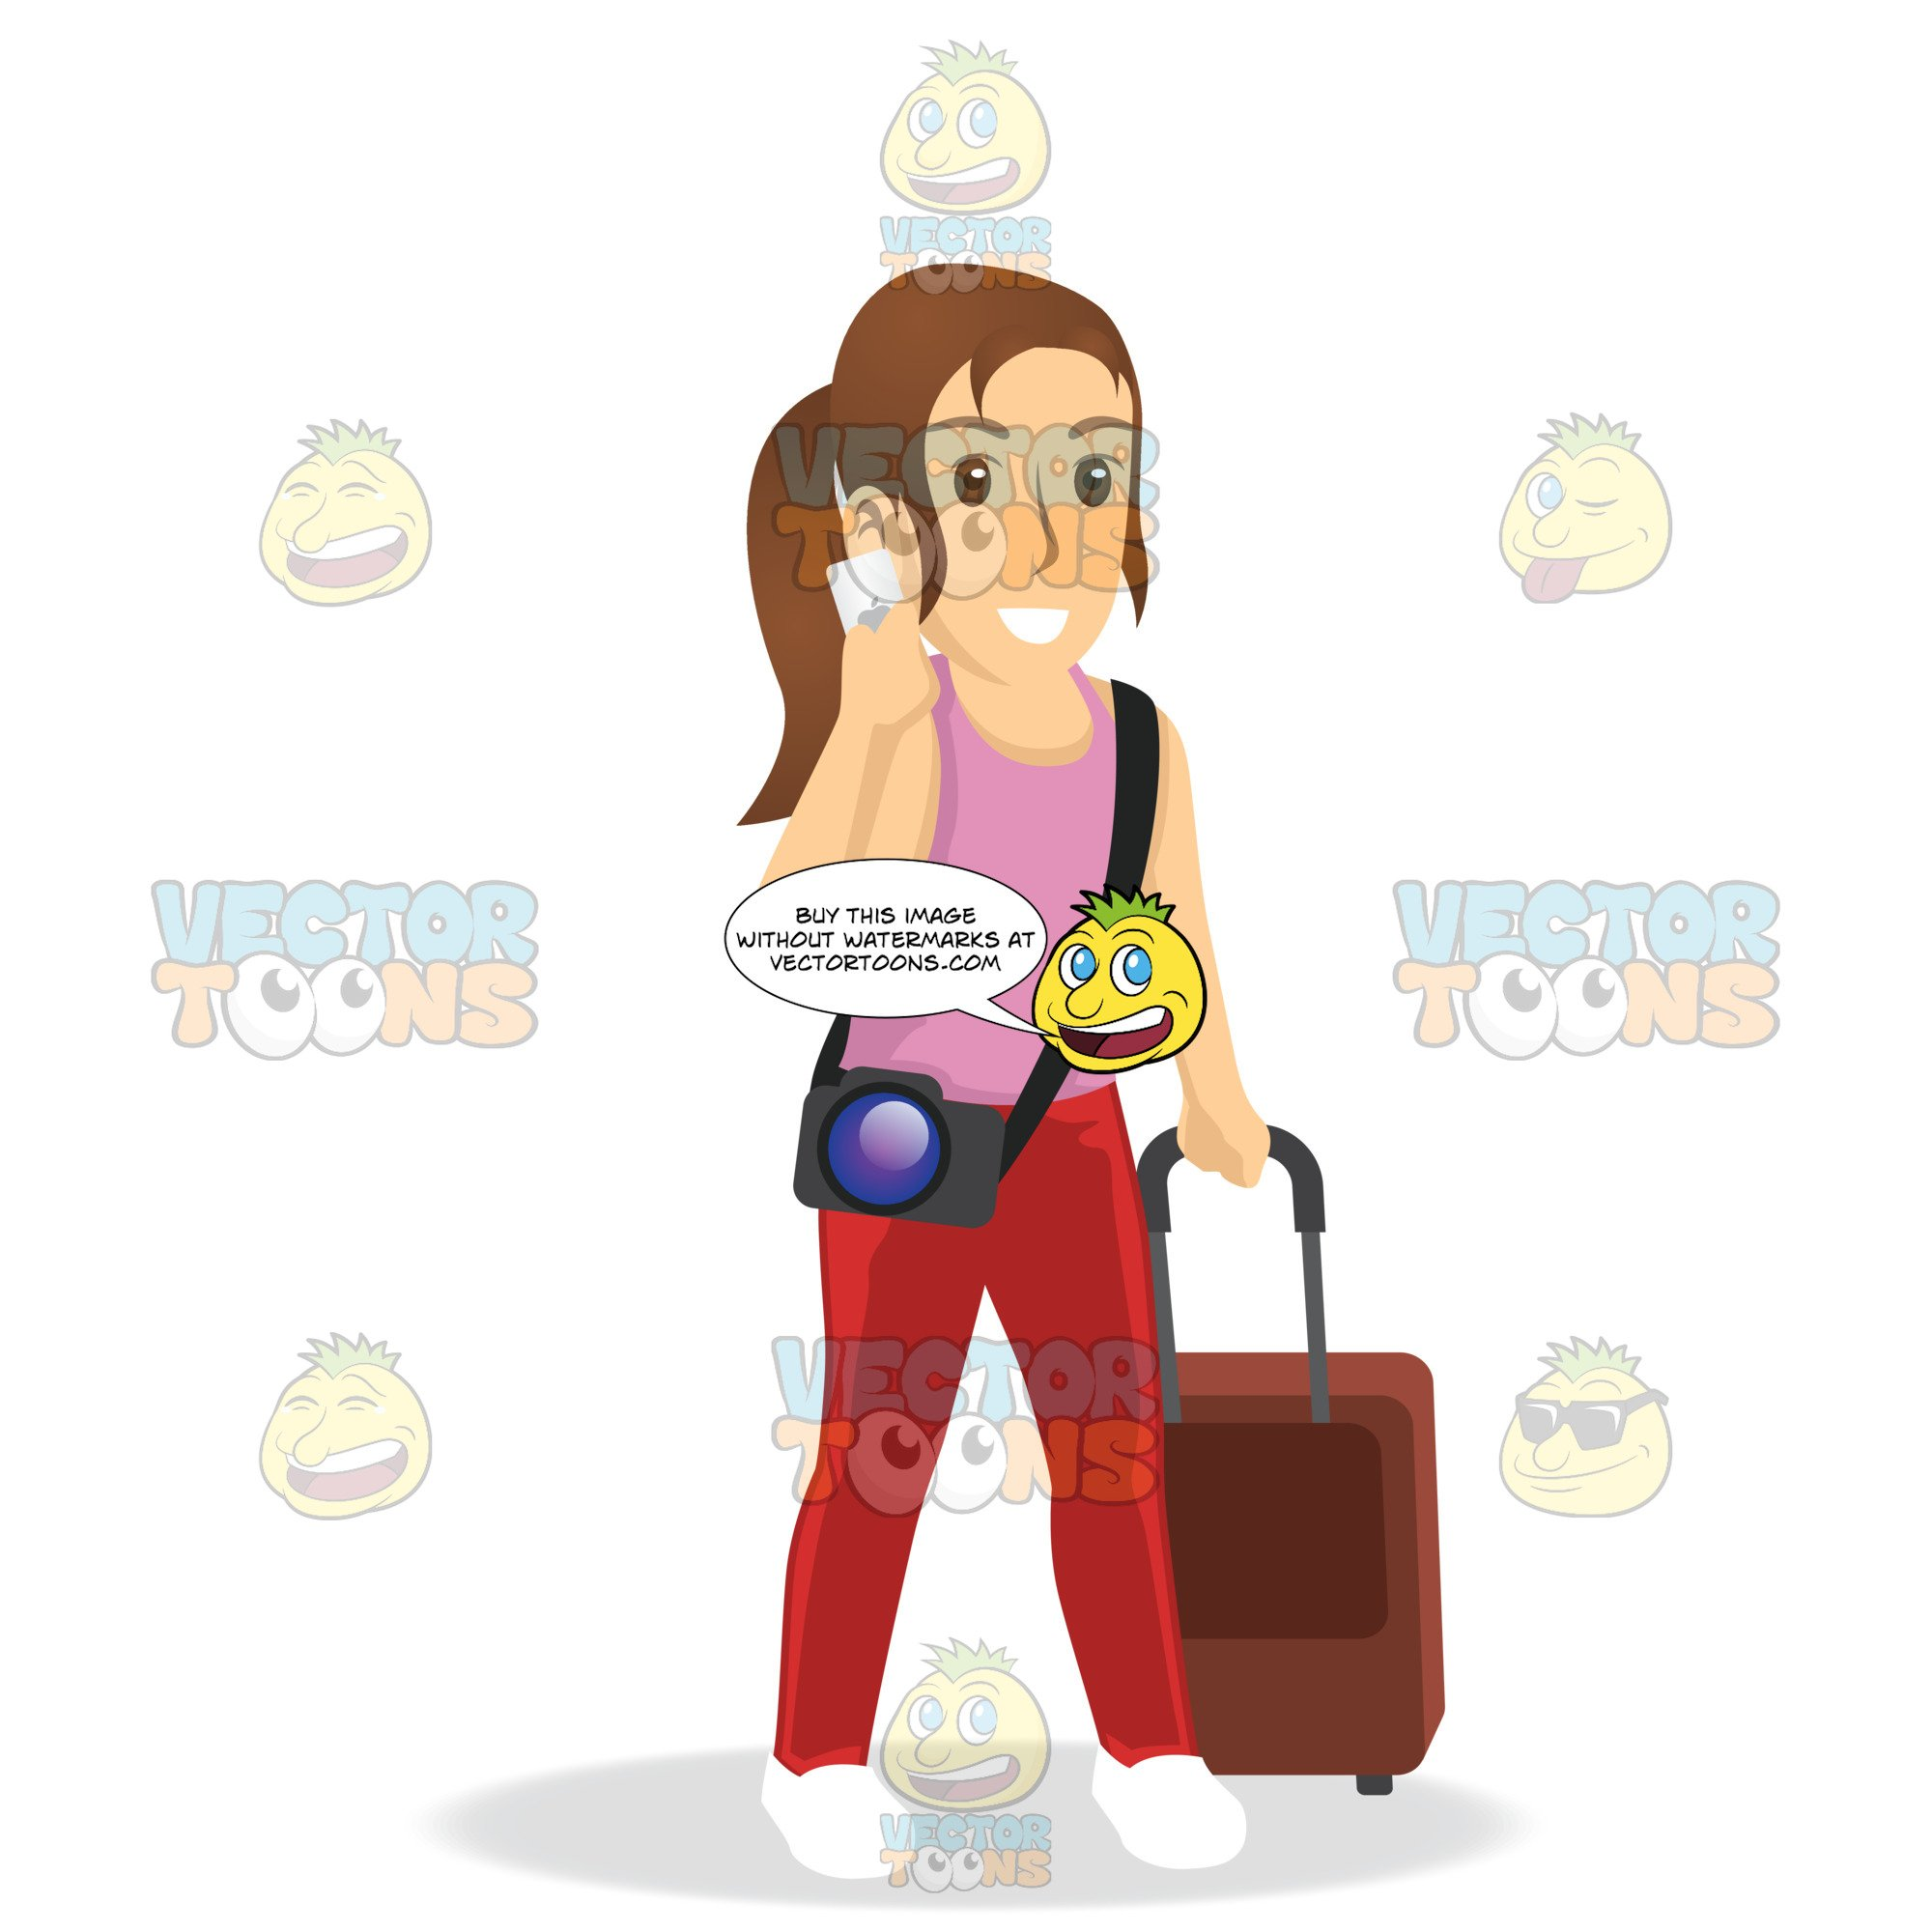 Woman On Iphone While Pulling Luggage.